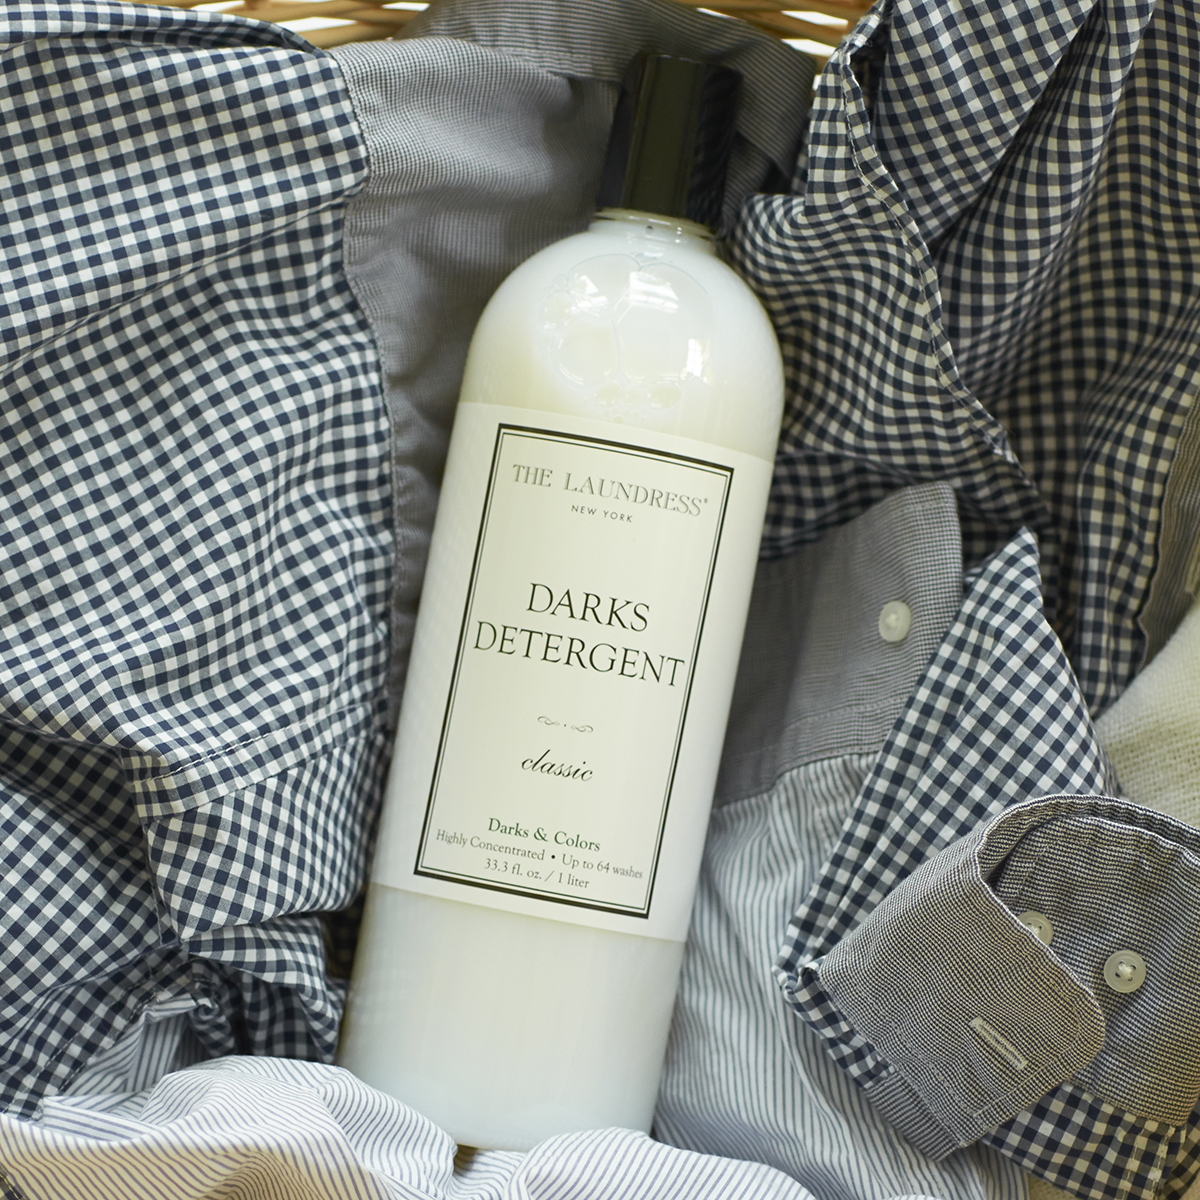 The Laundress 16 oz. Darks Detergent